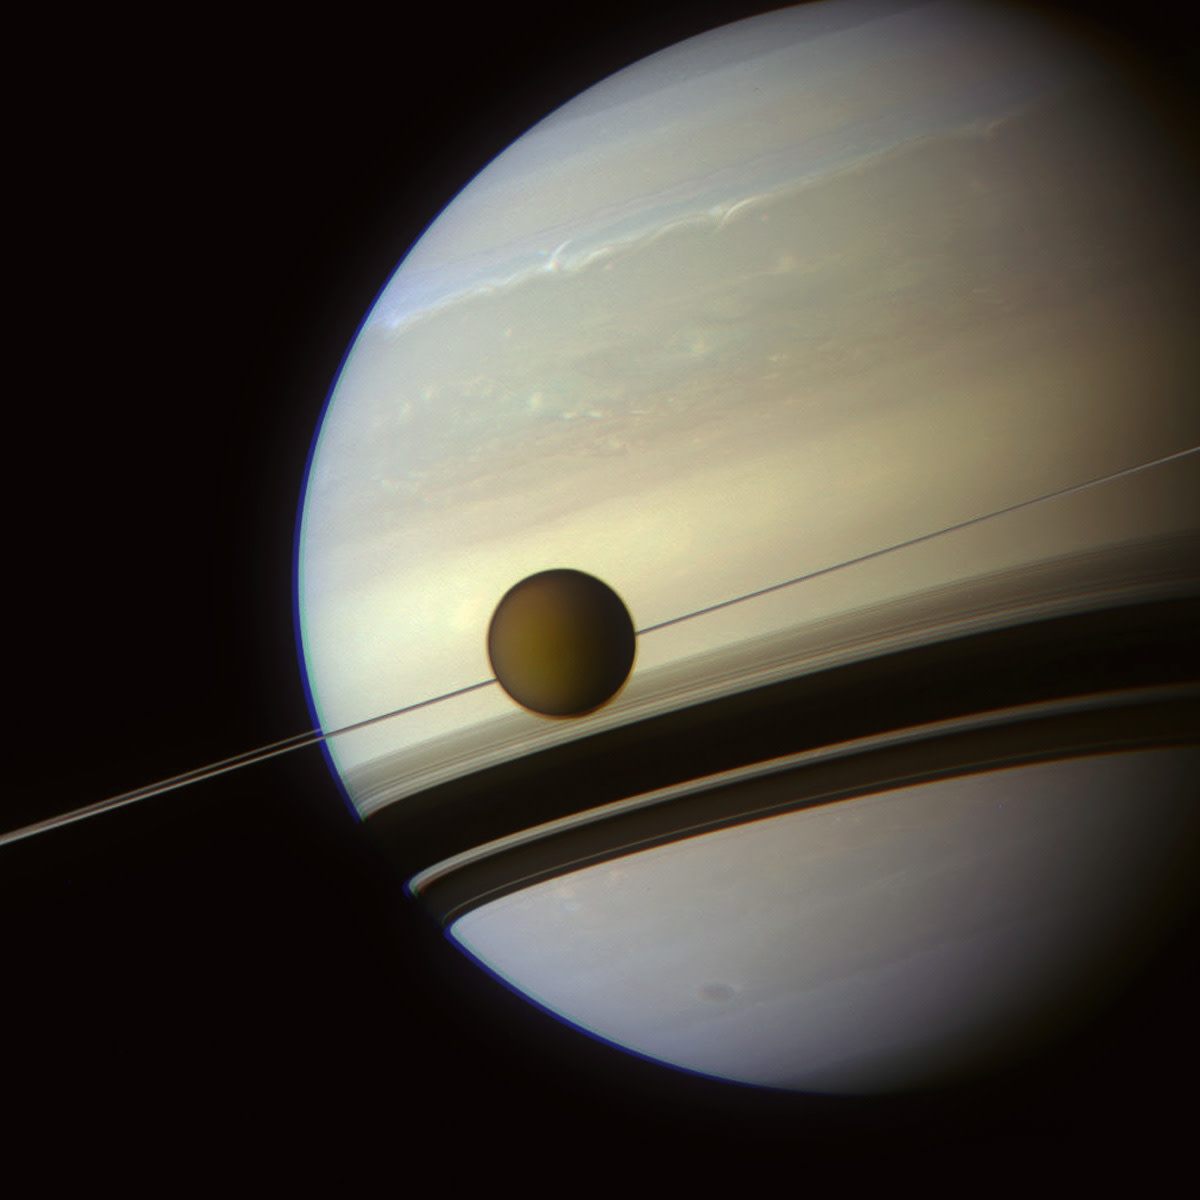 Titan lines up beautifully with Saturn's rings.